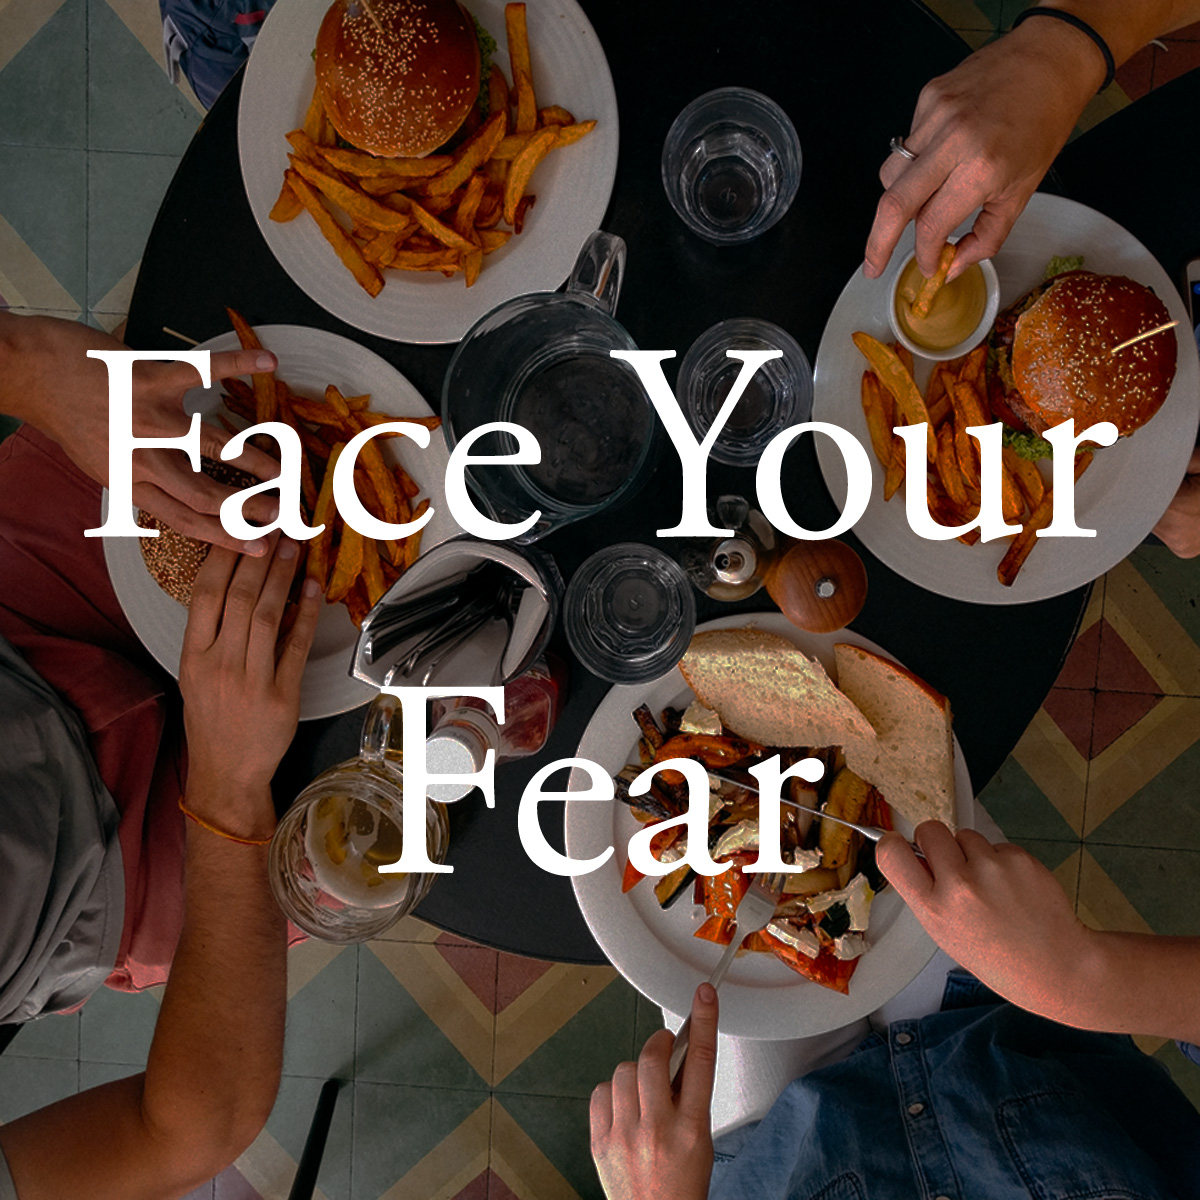 Best Use     When trying a brand new dish or style of food   Nutritional Value     Learning about facing our fears by trying out new foods, talking about personal challenges and learning how God's love conquers all.